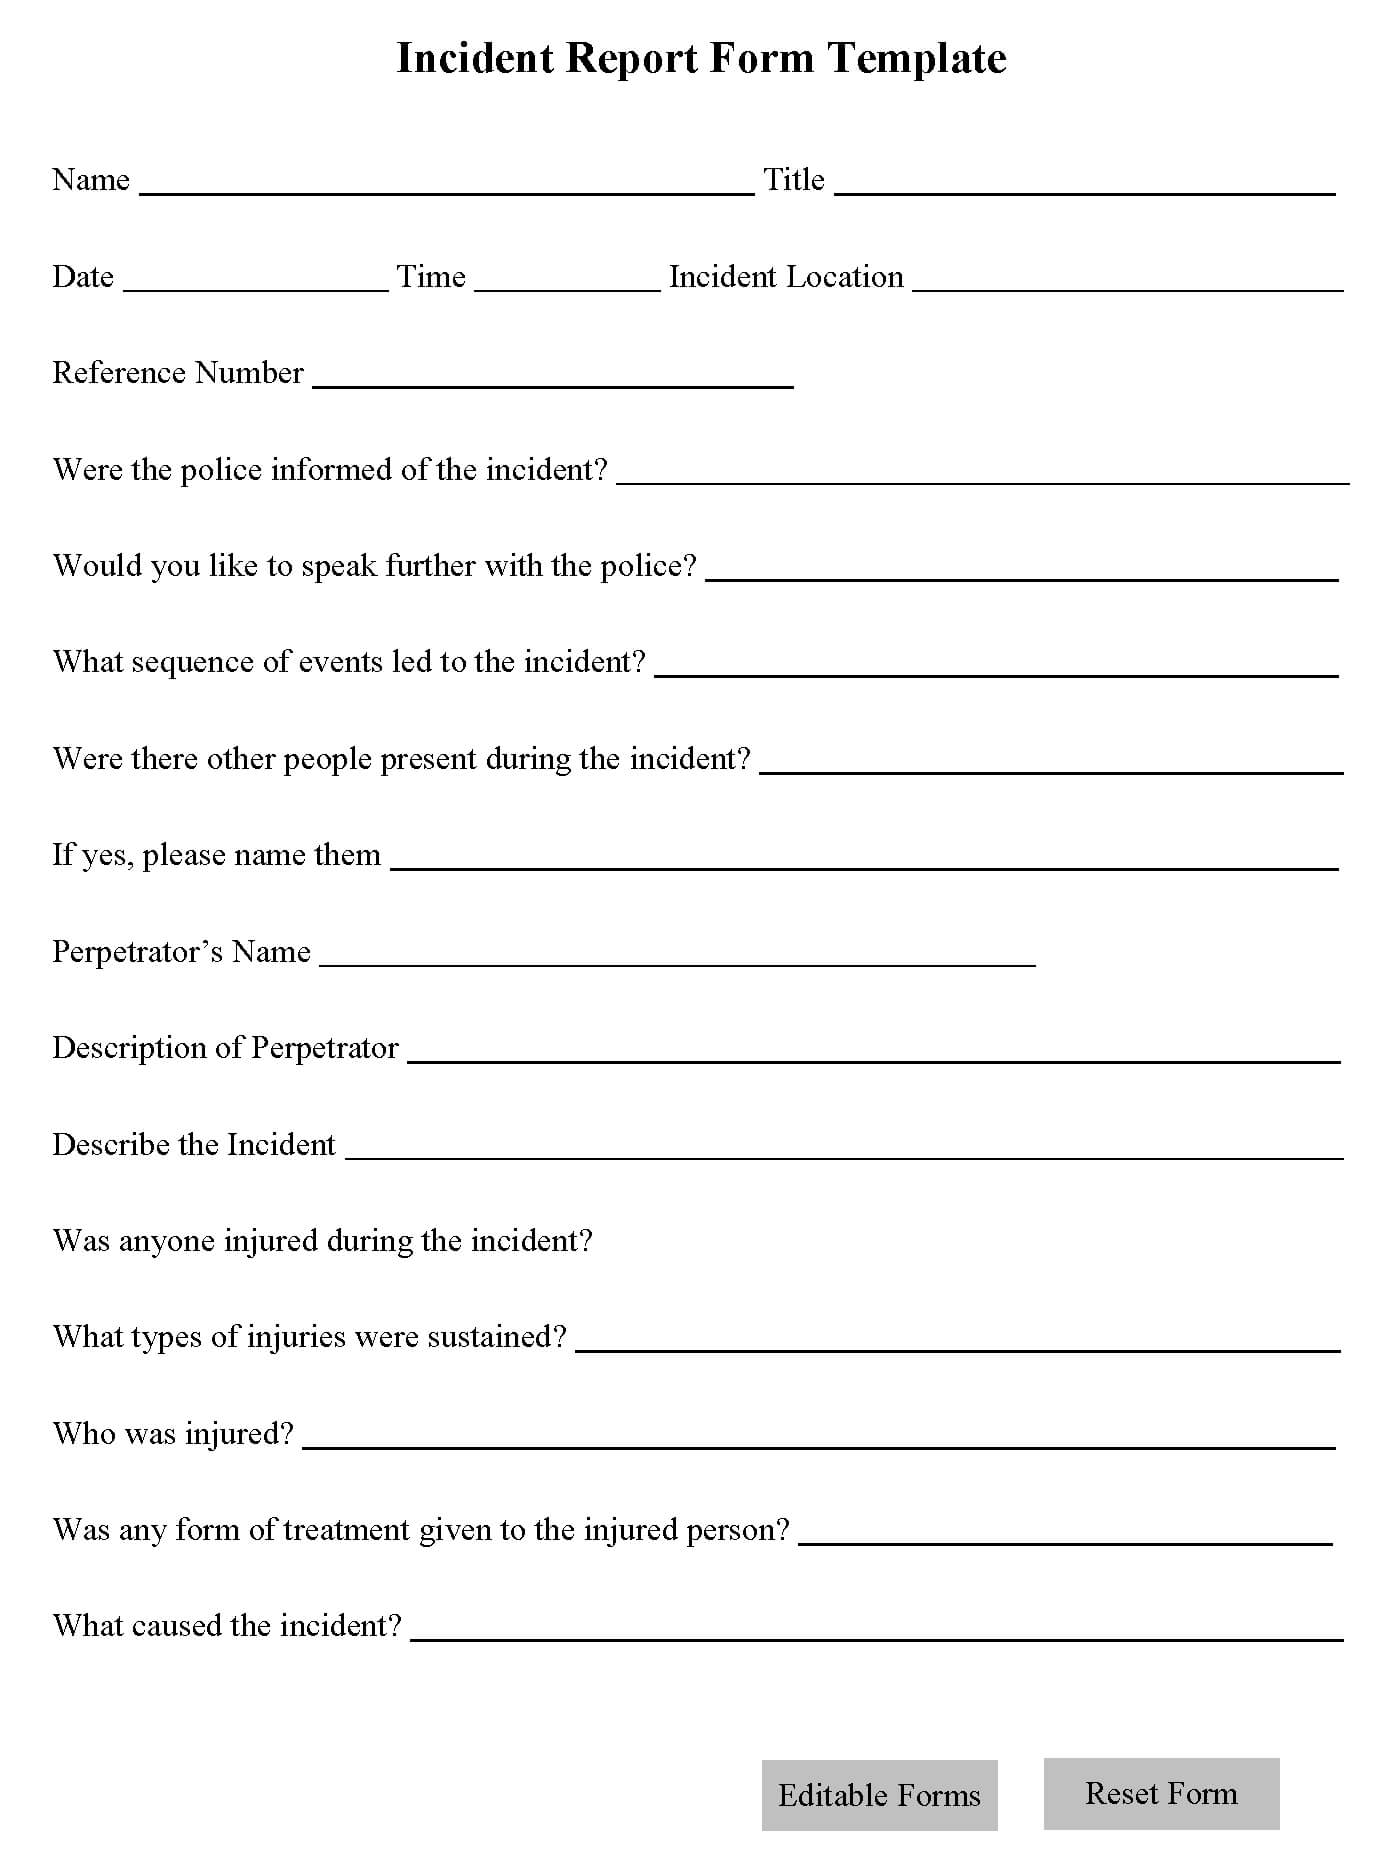 Incident Report Form Template | Editable Forms With Regard To Incident Report Form Template Word